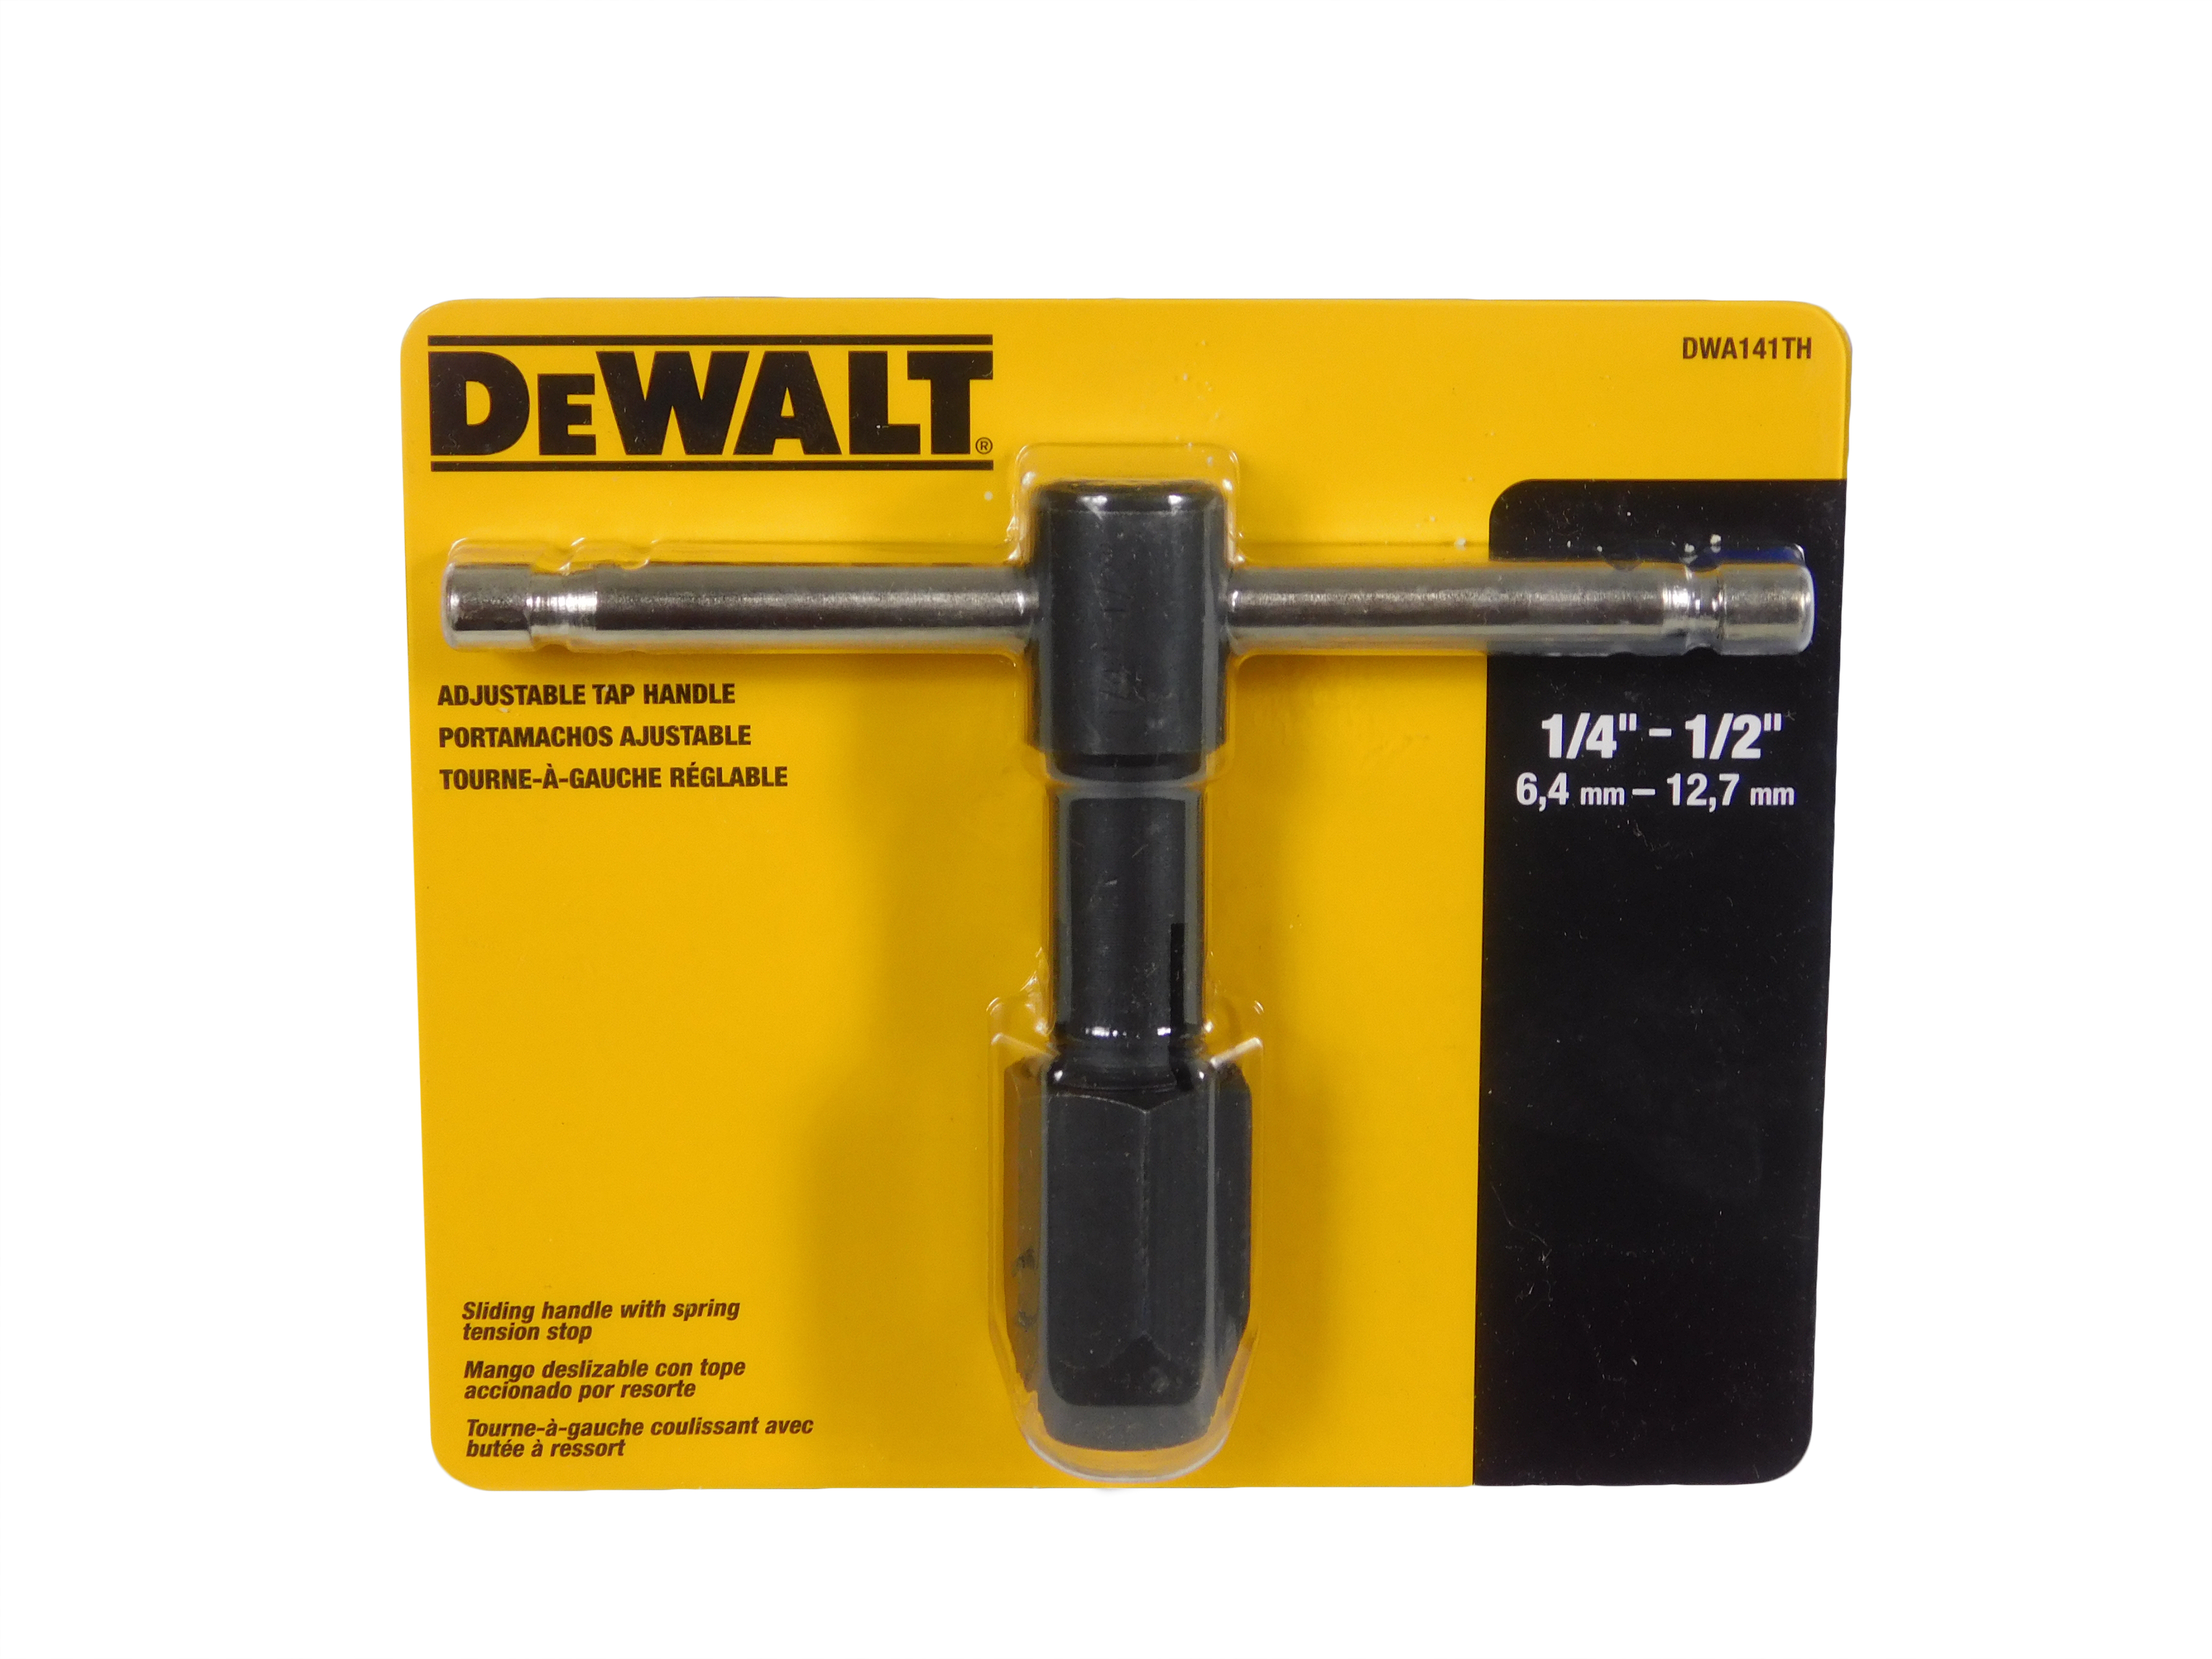 Dewalt-DWA141TH-1-4-in.-x-1-2-in.-Adjustable-Tap-Handle-image-1